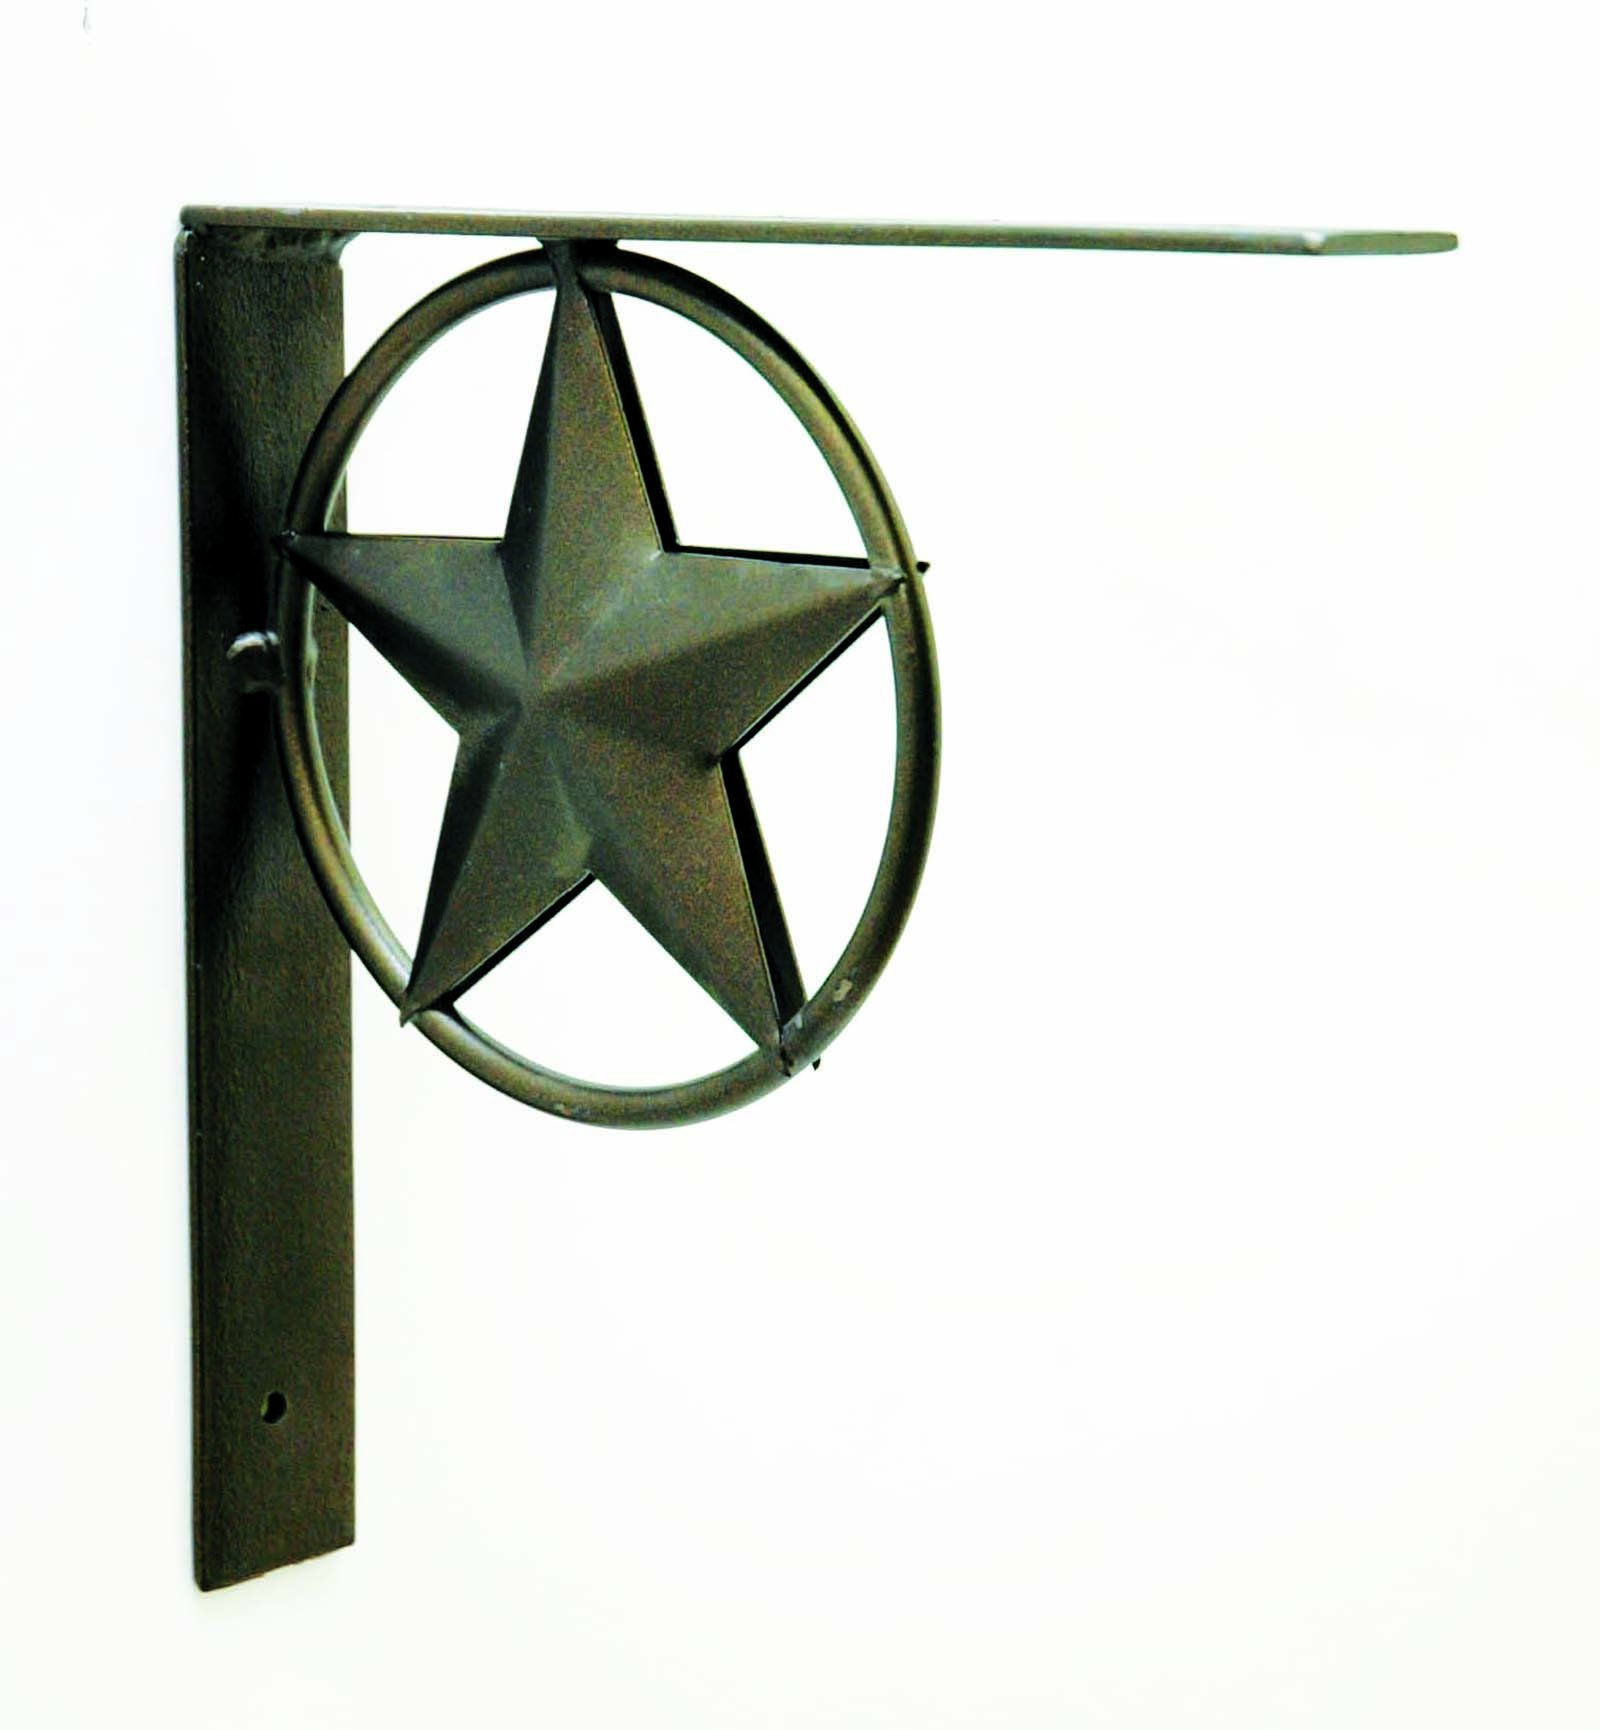 IRON STAR BRACKET, 8 INCHES TALL.